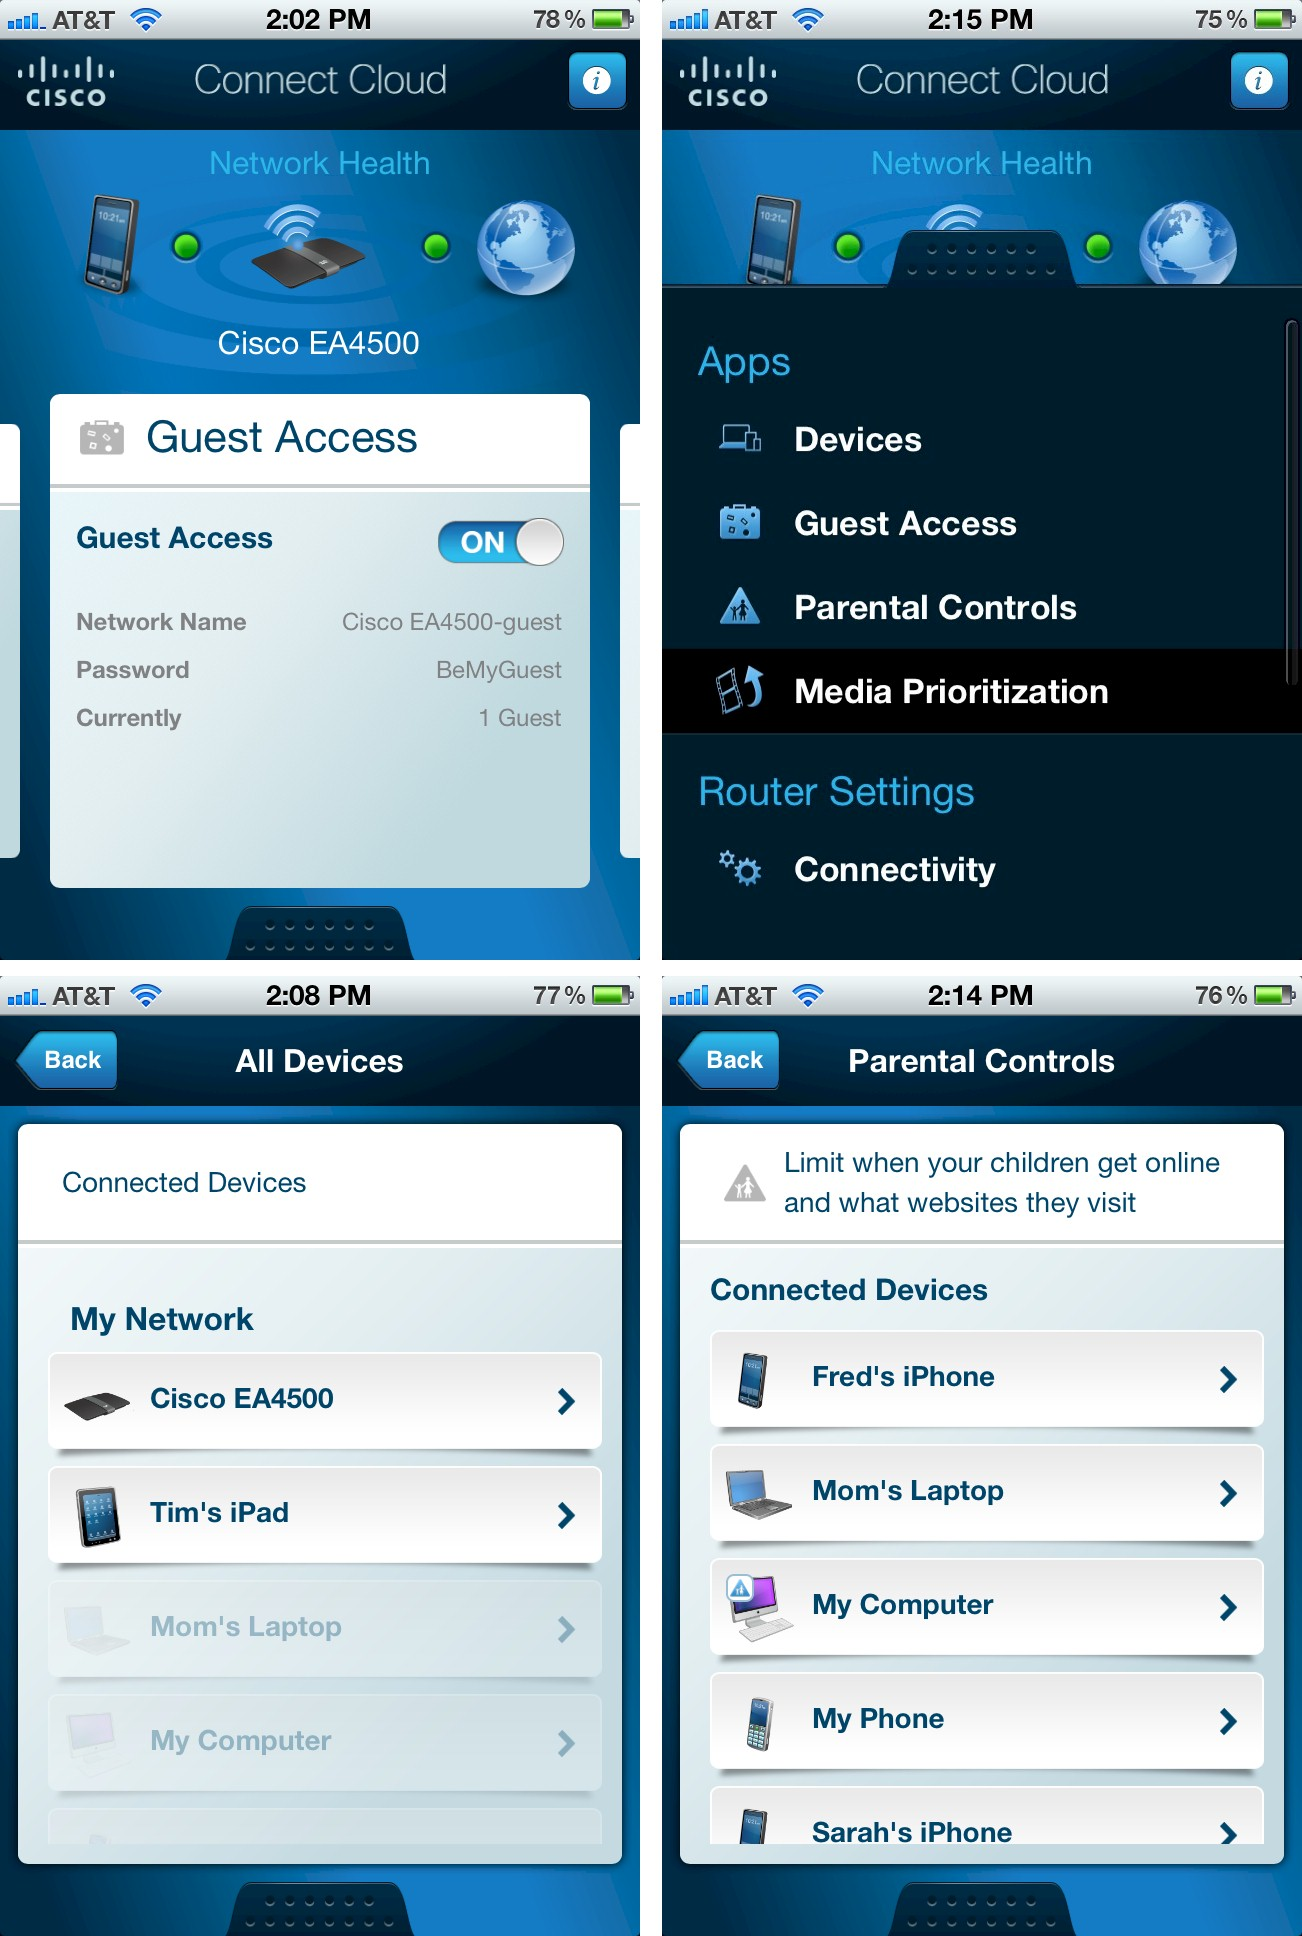 Cisco Connect Cloud iOS app screenshots